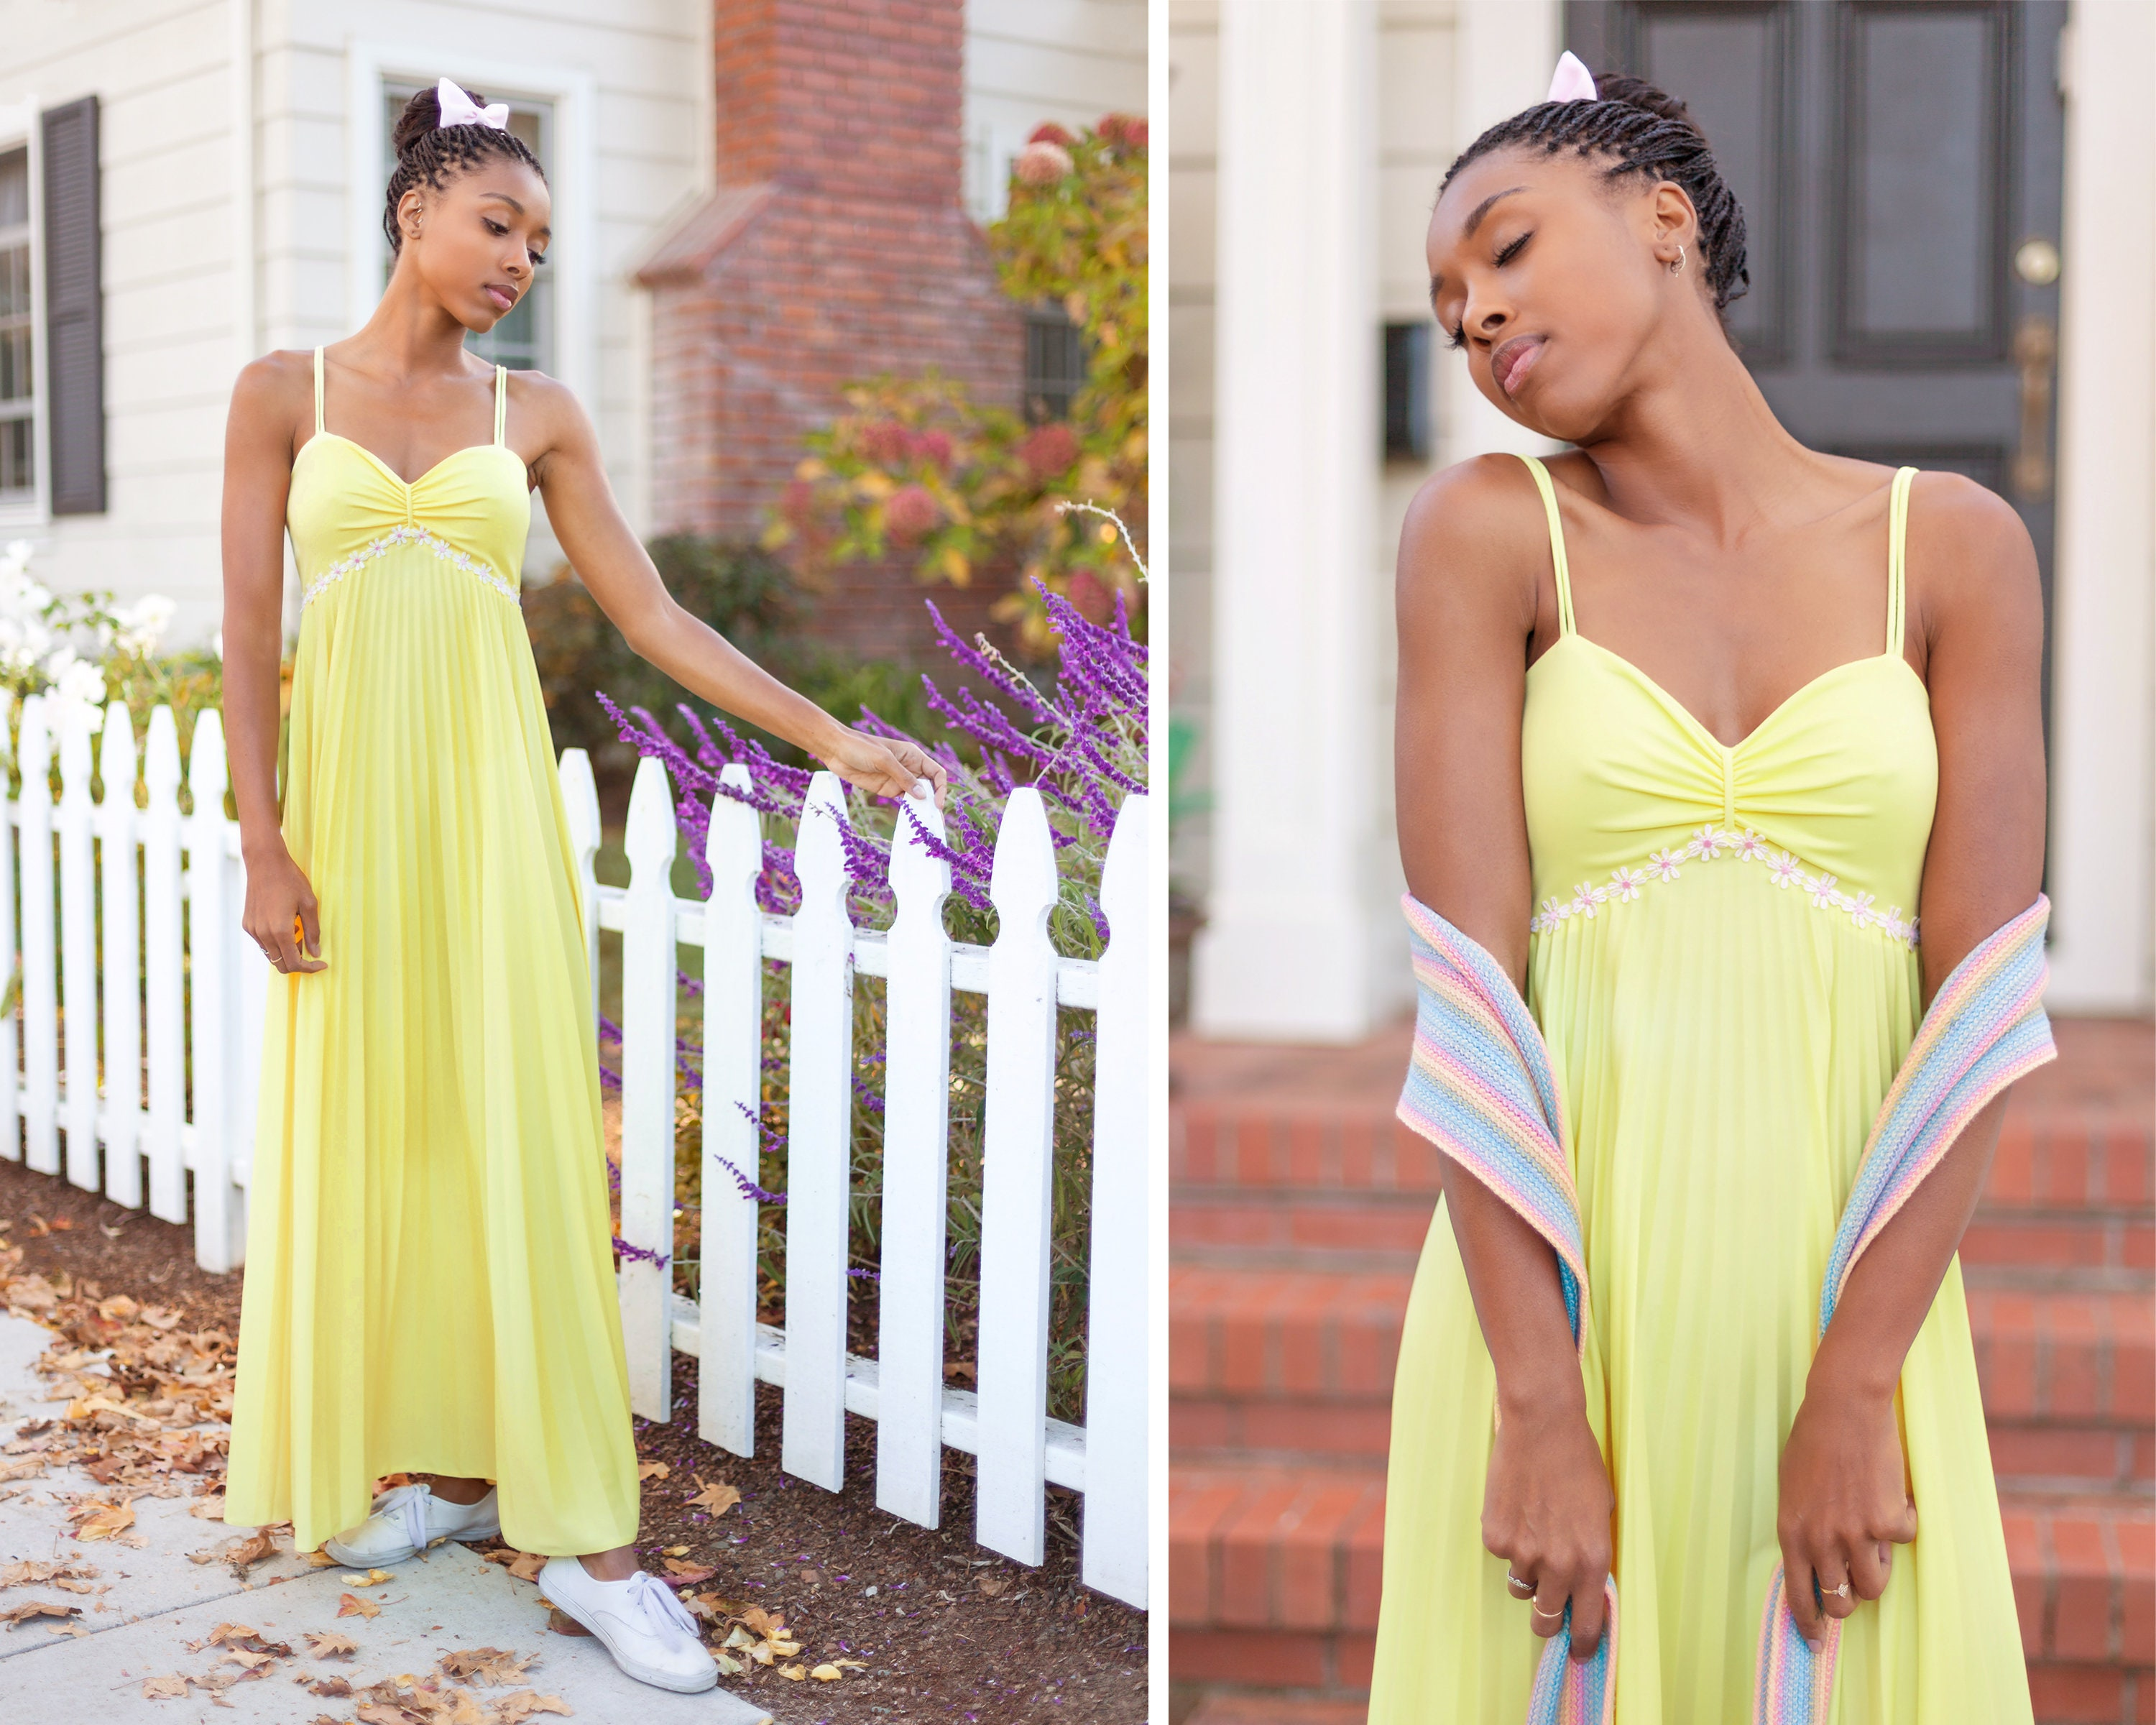 d6c477751c4f Vintage 70s Daisy Flower Trim Yellow Pastel Pink Empire Waist Pleated  Sweetheart Neck Sleeveless Strappy Long Prom Dress Formal Gown XS S M